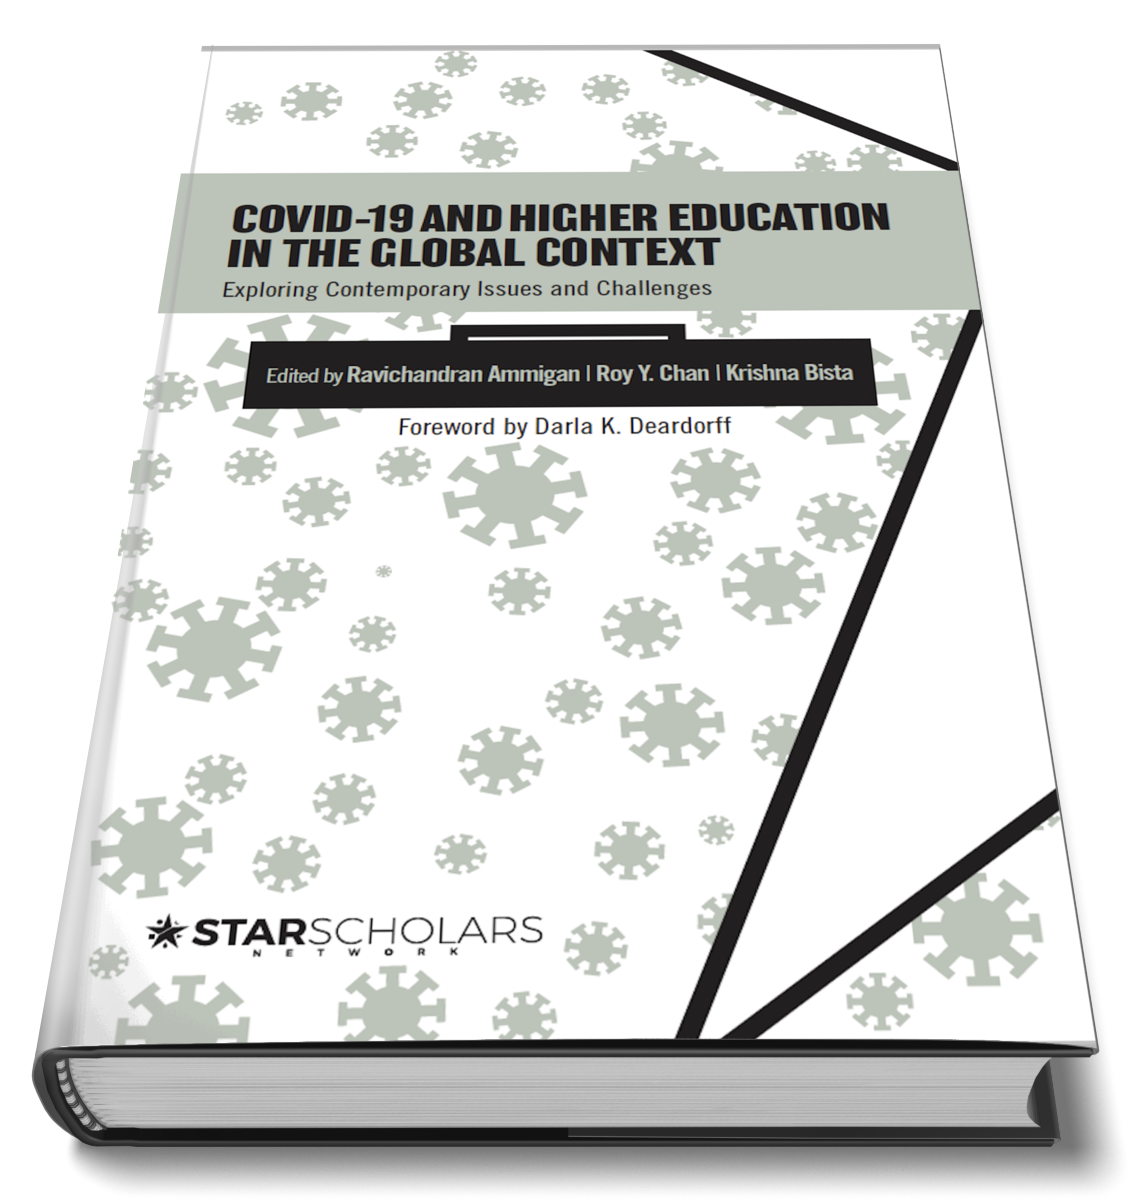 View 2022: COVID-19 and Higher Education in the Global Context: Exploring Contemporary Issues and Challenges